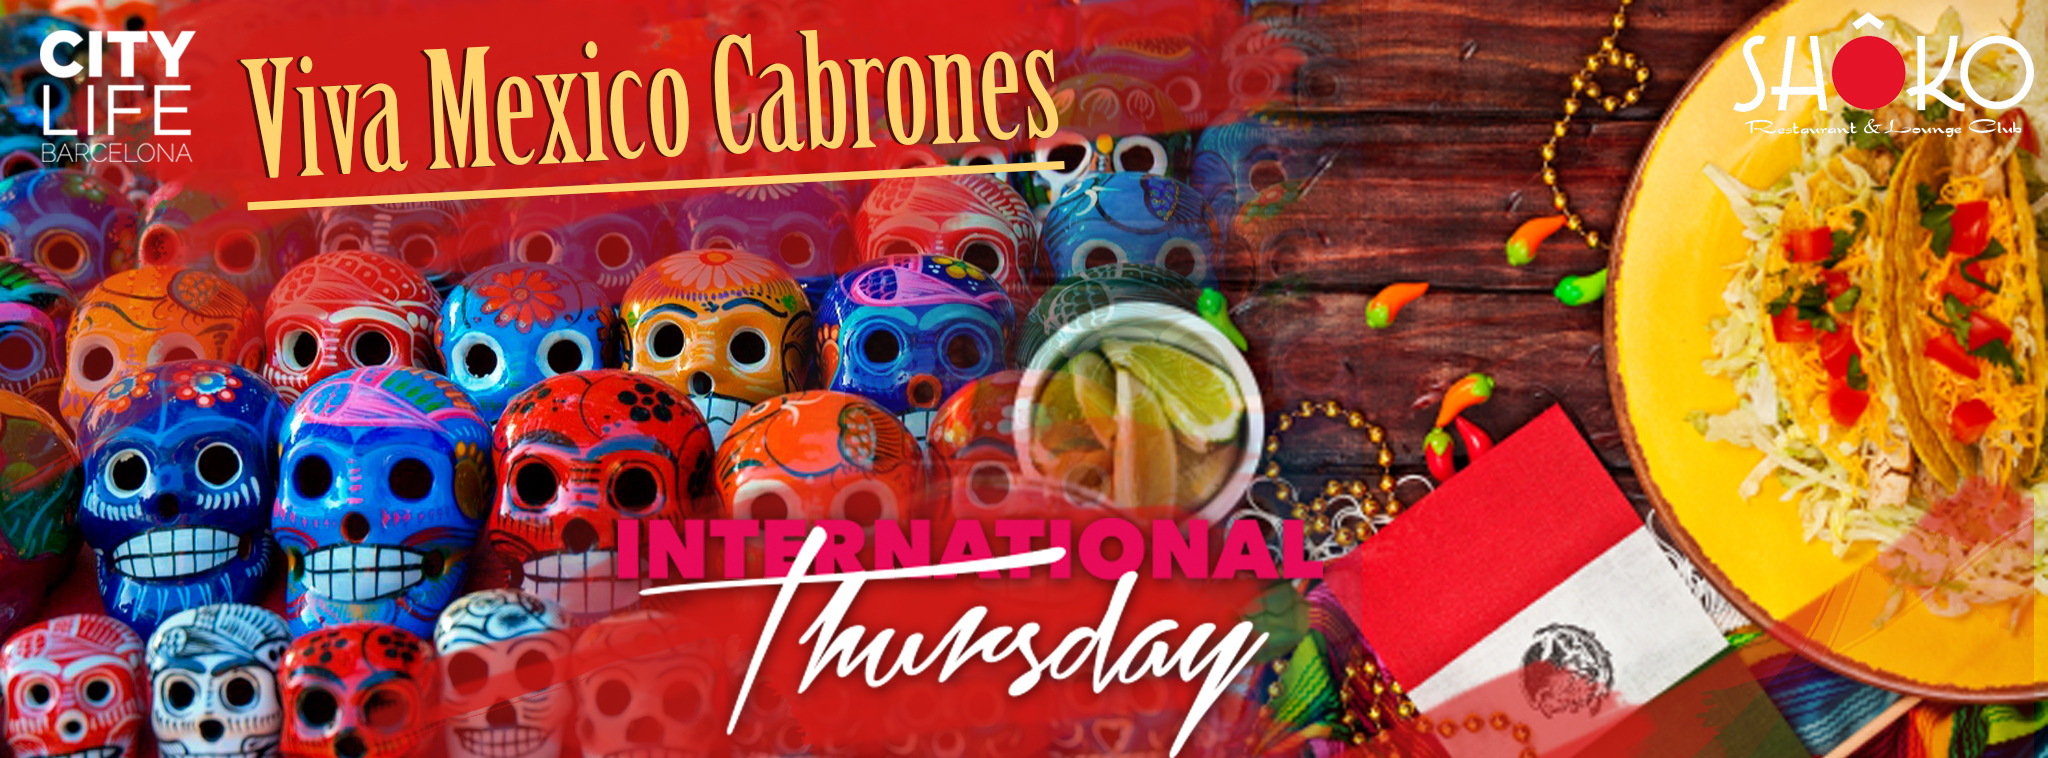 Viva Mexico Cabrones – Free Dinner, 3 Free Drinks & Party! @Shoko Lounge Club!